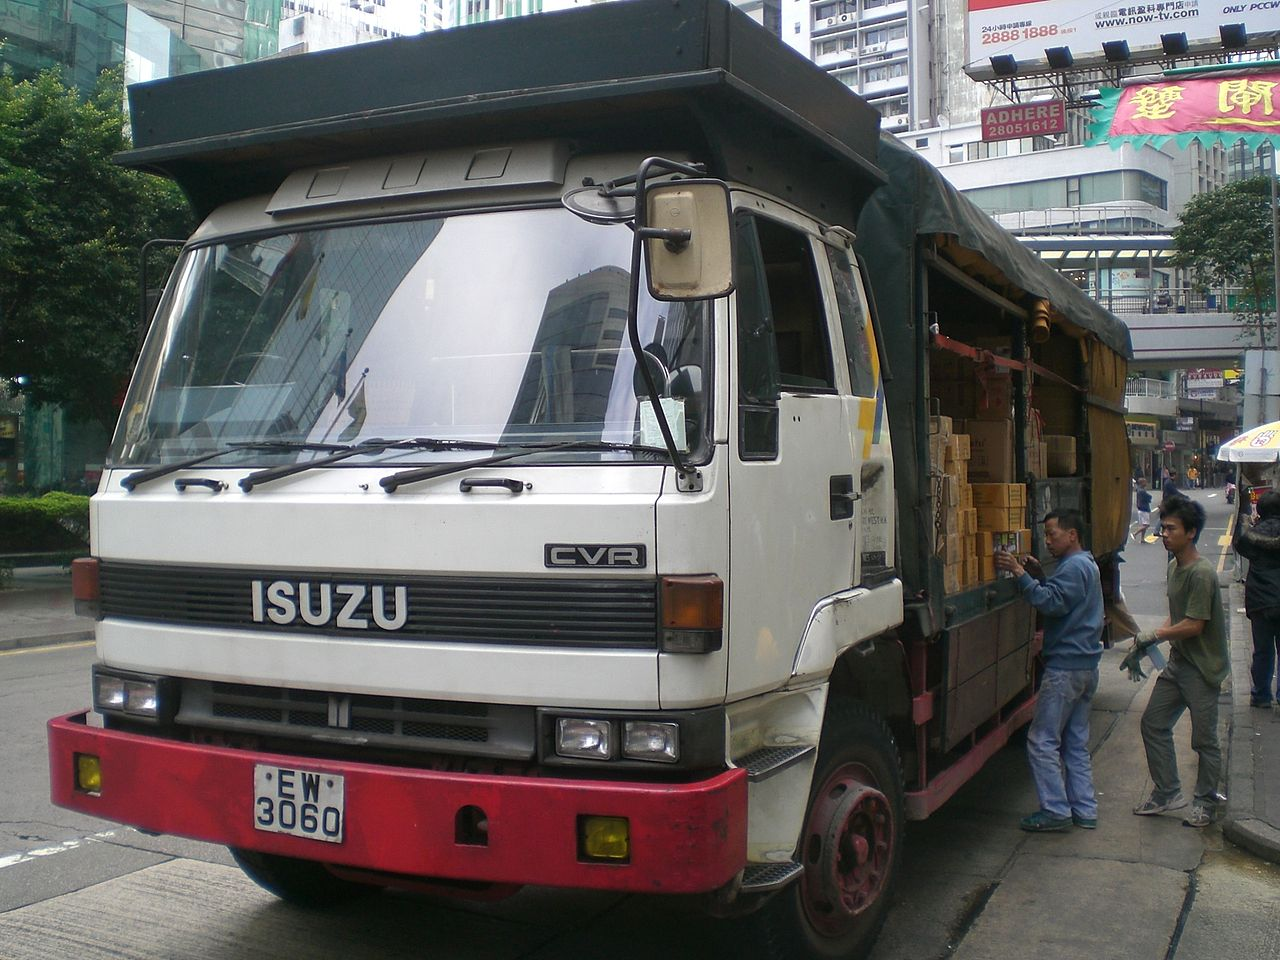 File:HK ISUZU CVR Central Queen Road C.JPG - Wikimedia Commons